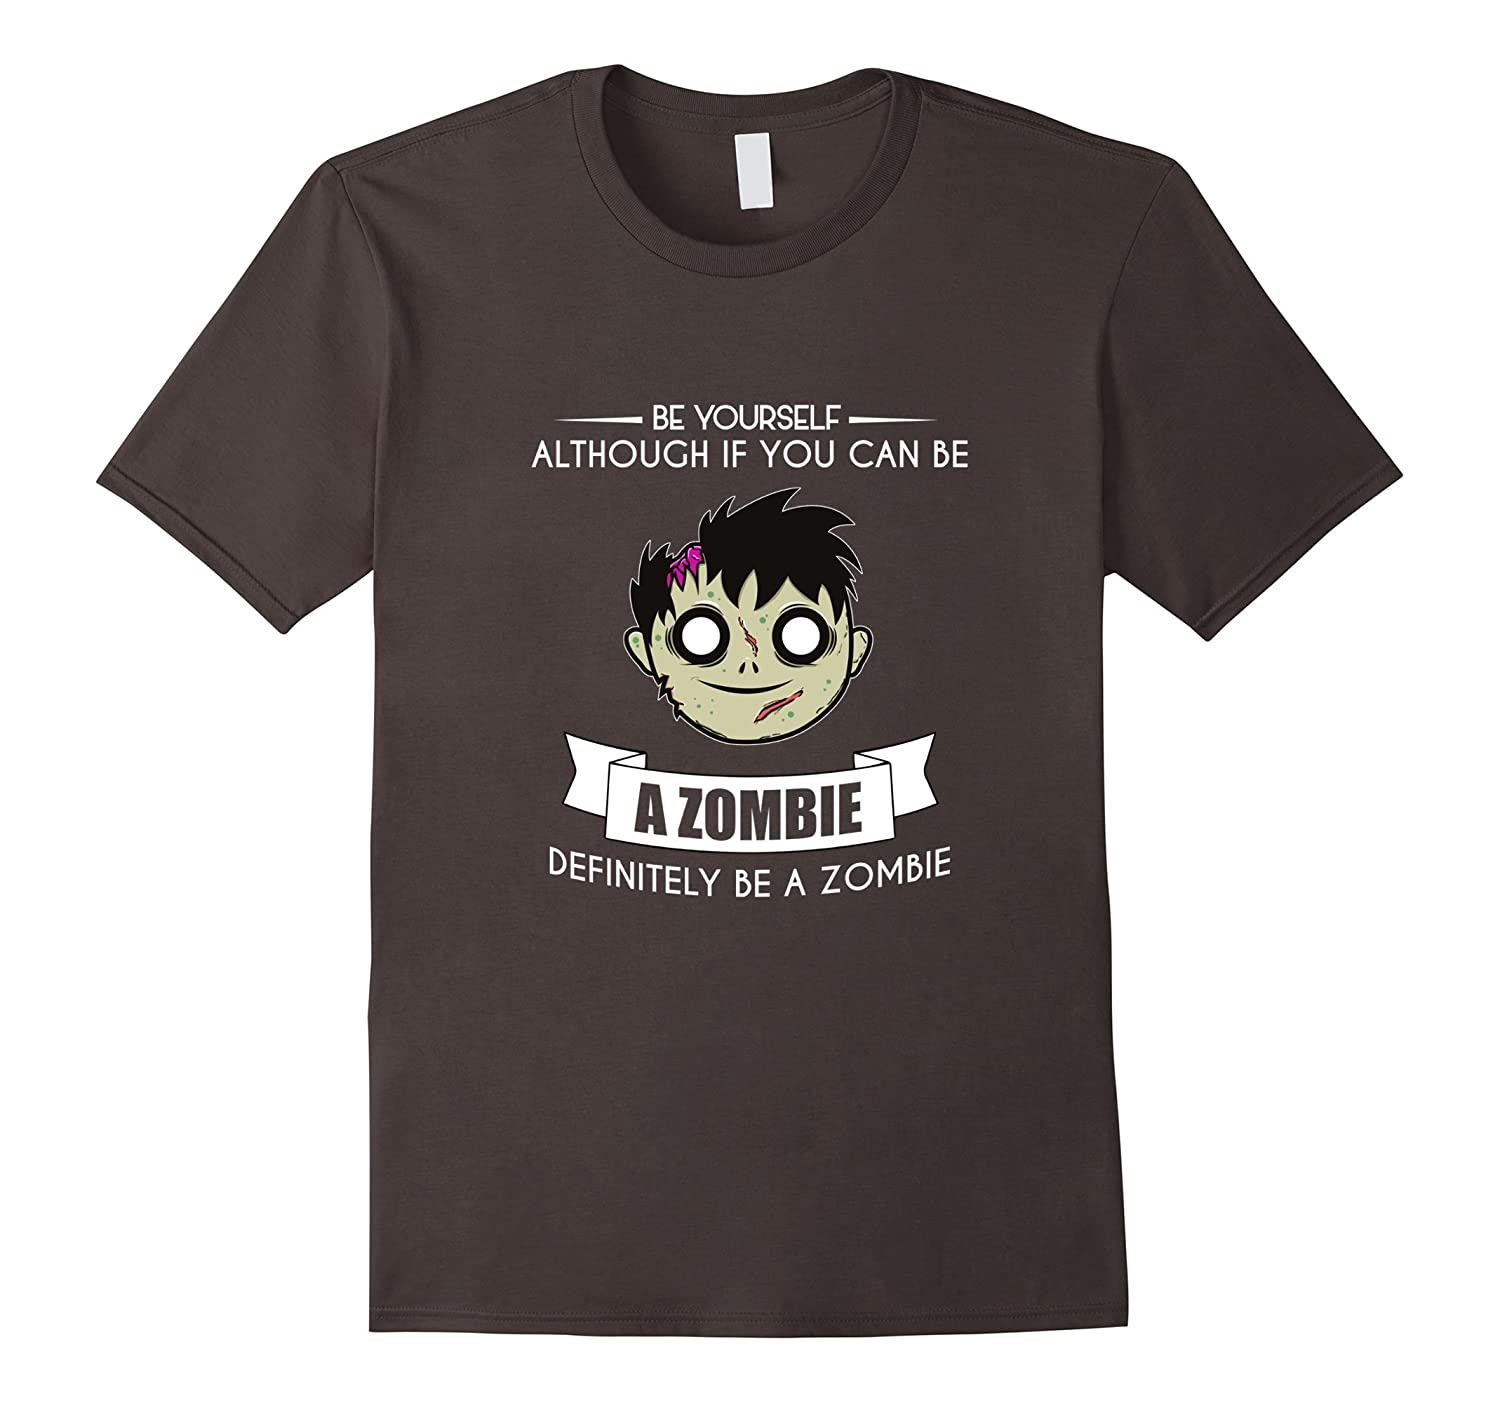 Funny Be Yourself Zombie T-shirt Geek Horror Gamer Meme Gift-TJ